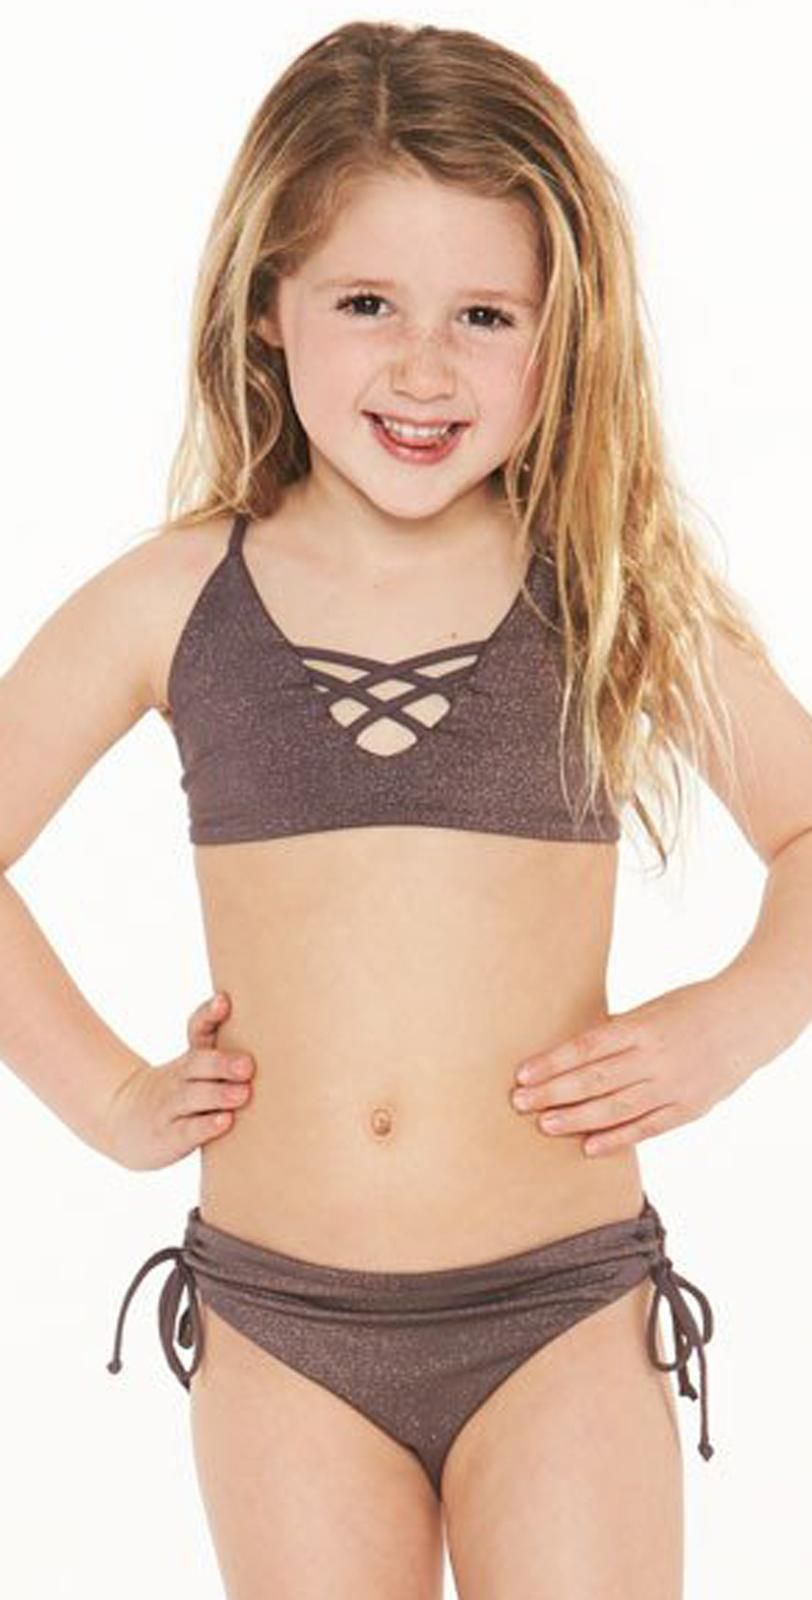 cc6624f61b L Space Little L* Shimmer Bikini in Pebble | Mini Me Swimsuits ...